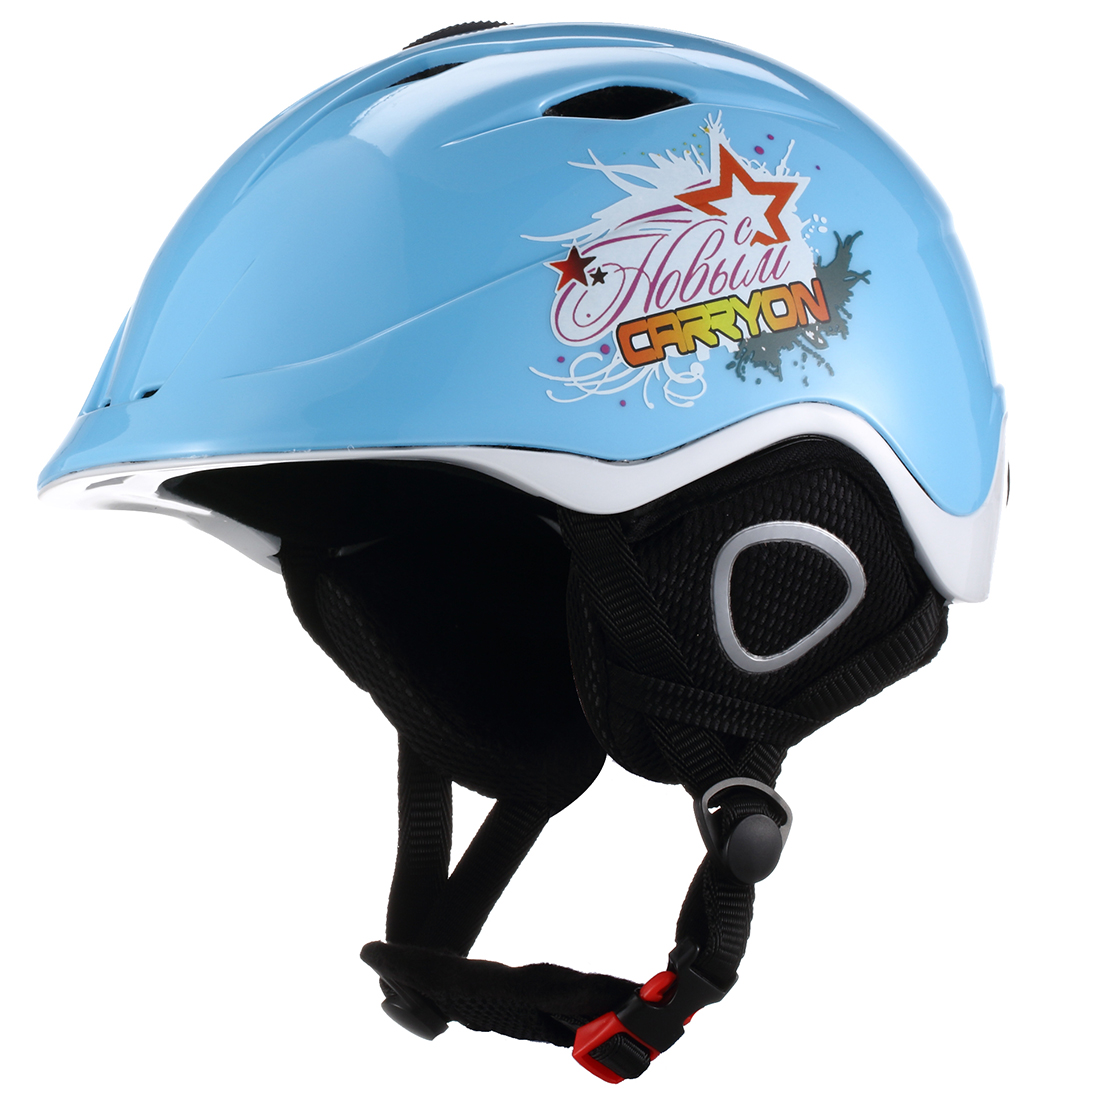 Carryon Authorized Adult Snowboard Ski Helmet Winter Sports Head Protect Blue M